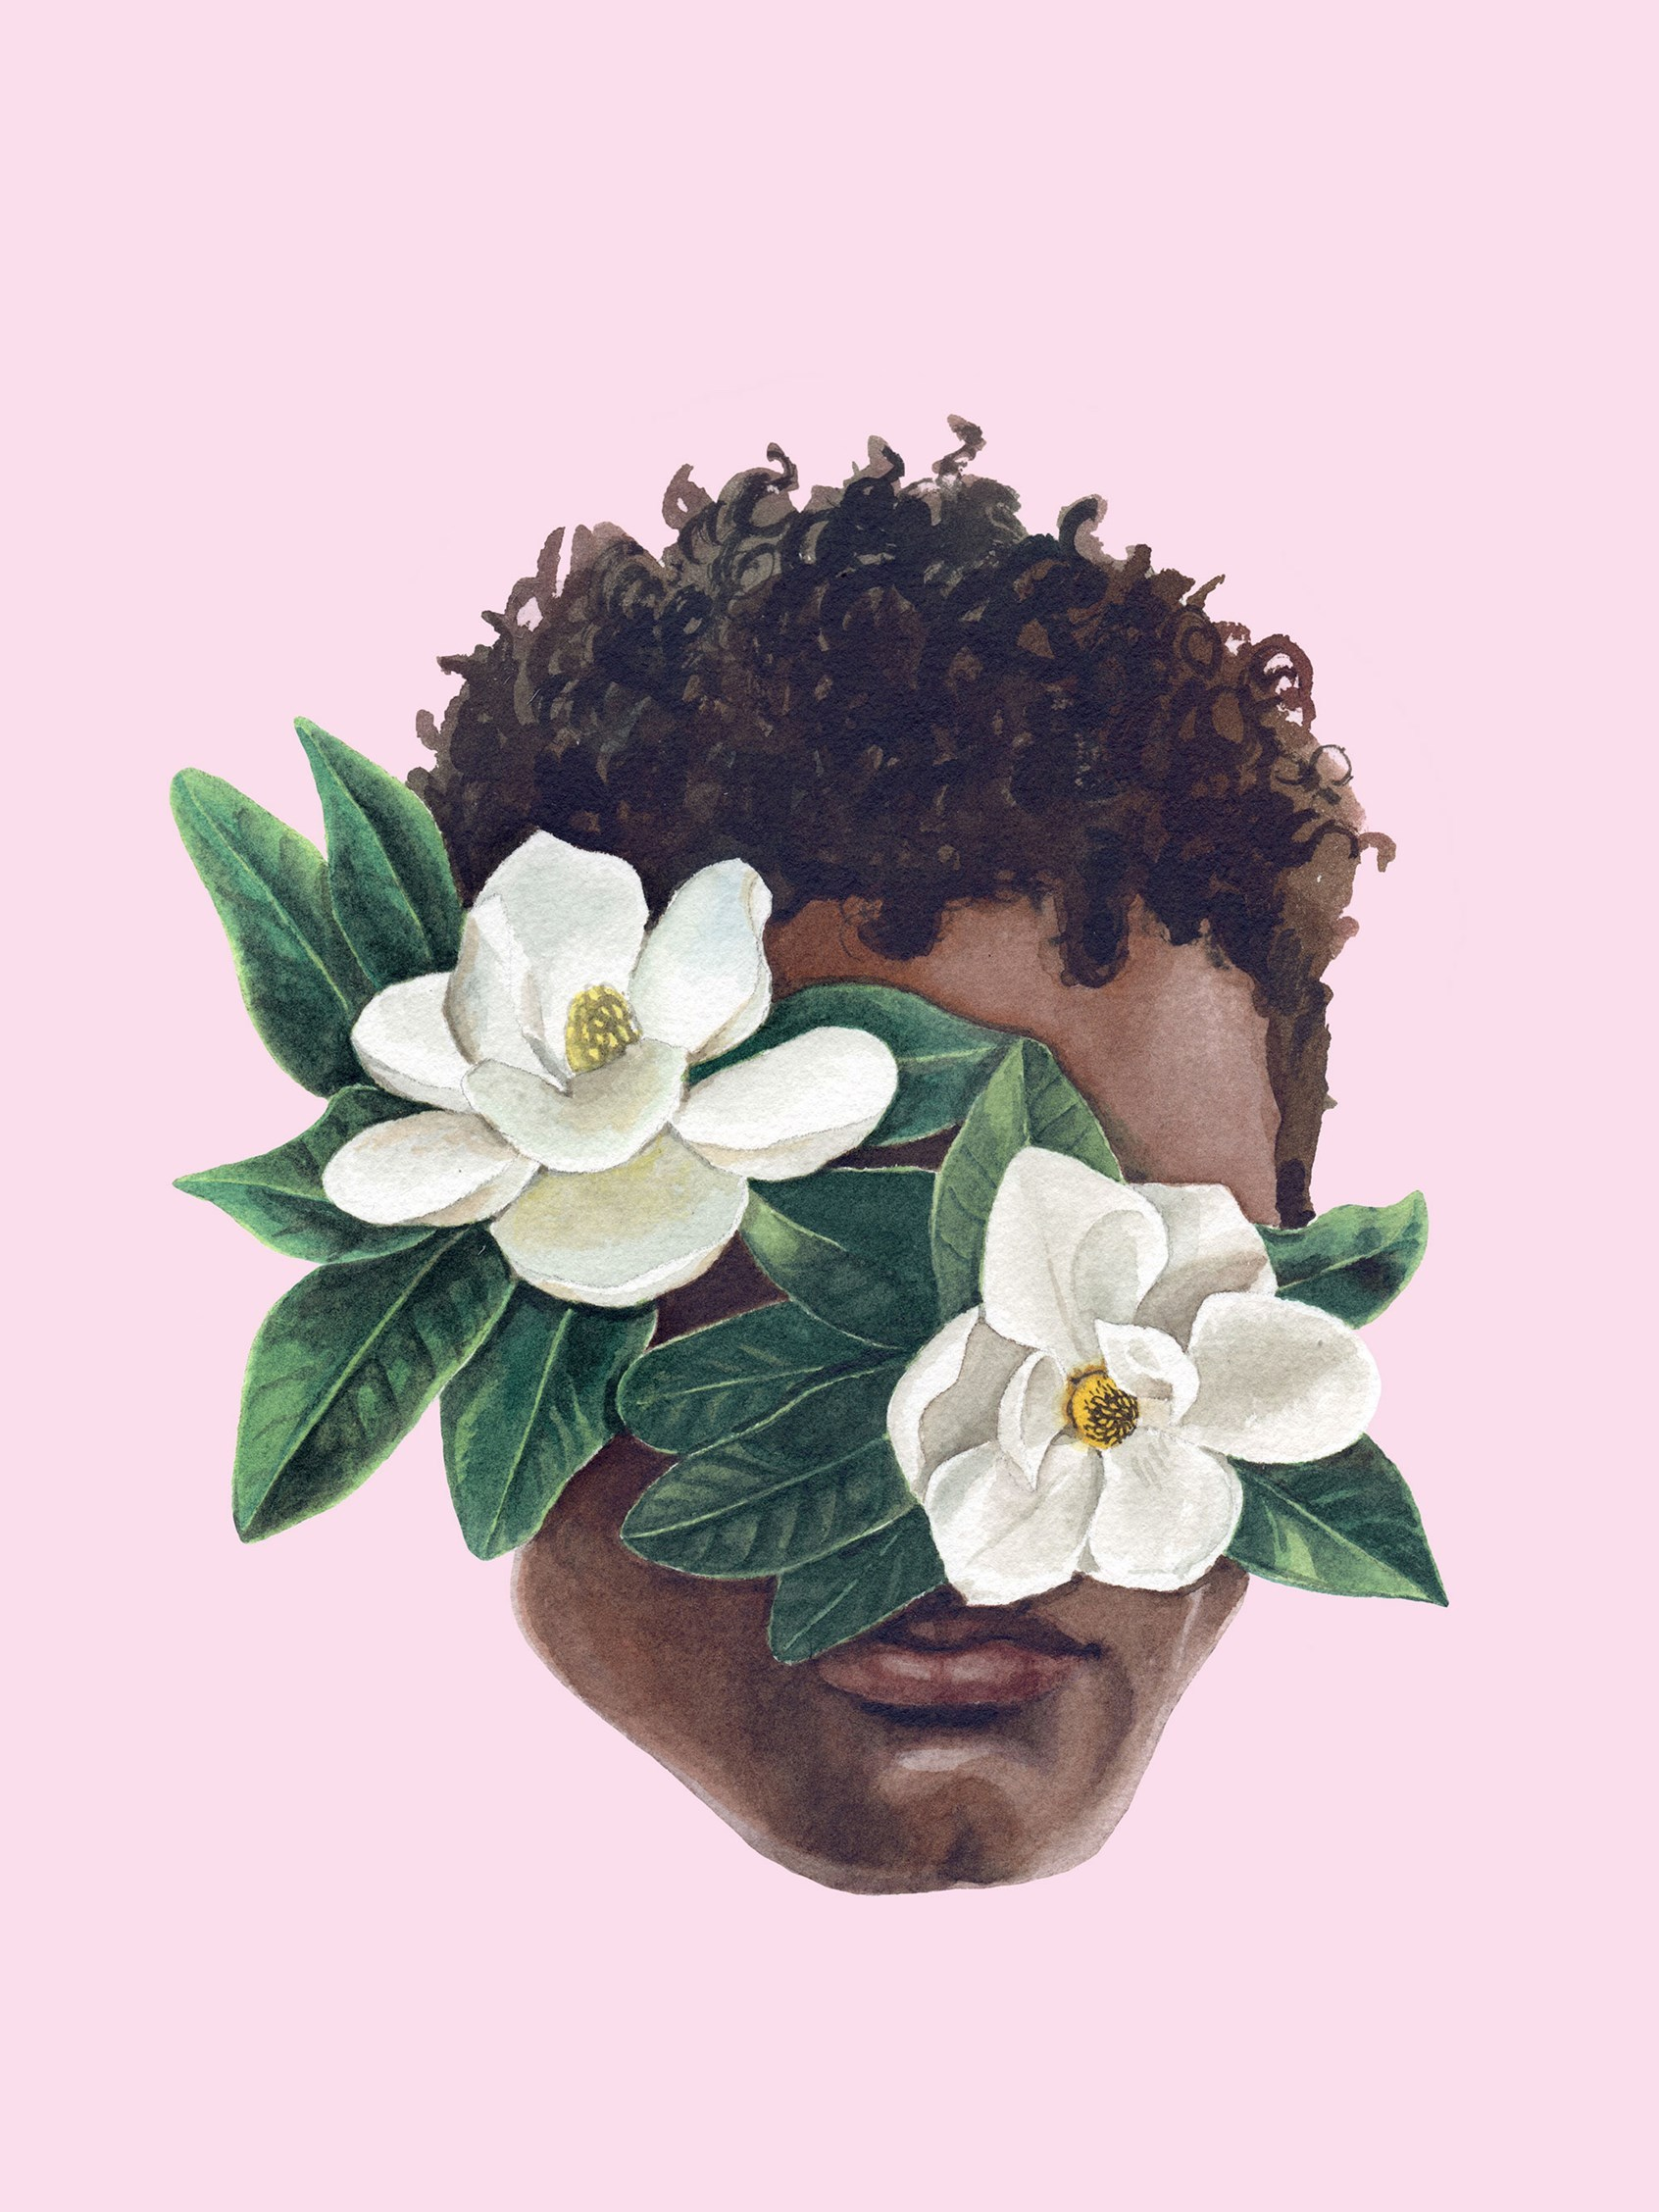 Portrait of a man's face obscured by flowers.